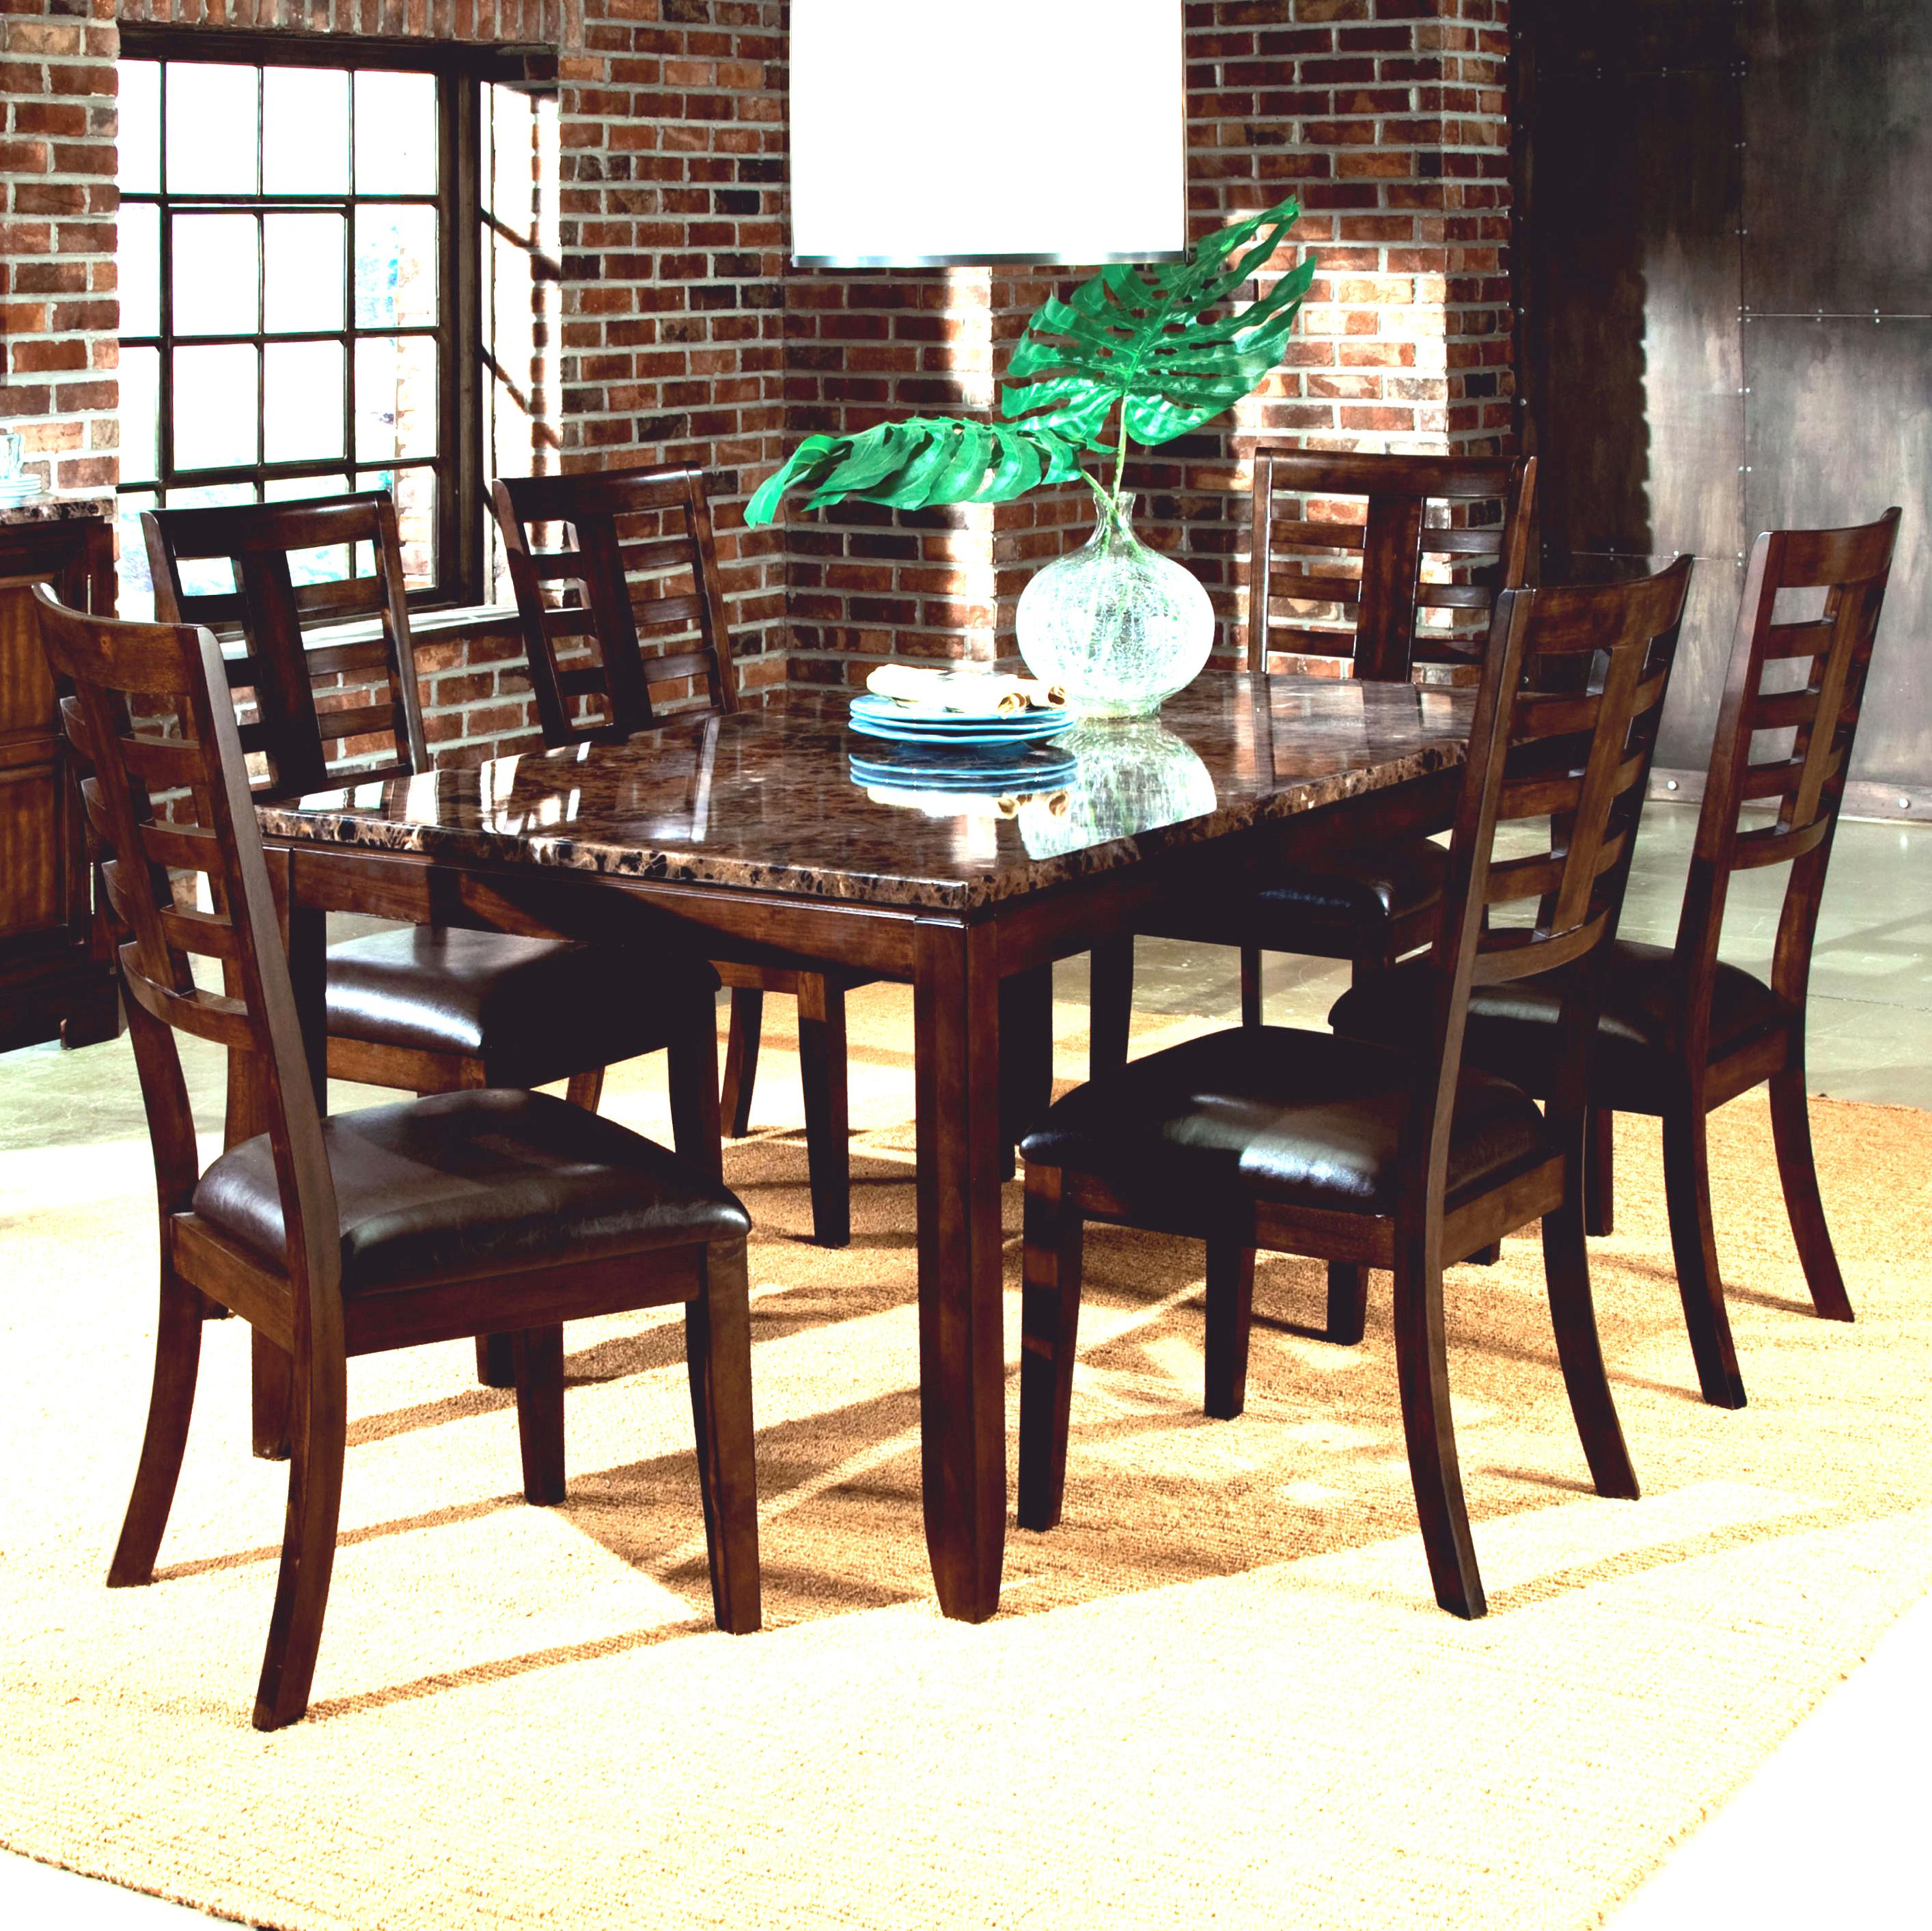 Beau Standard Furniture Bella 7 Piece Dining Set   Item Number: 16841+4x4